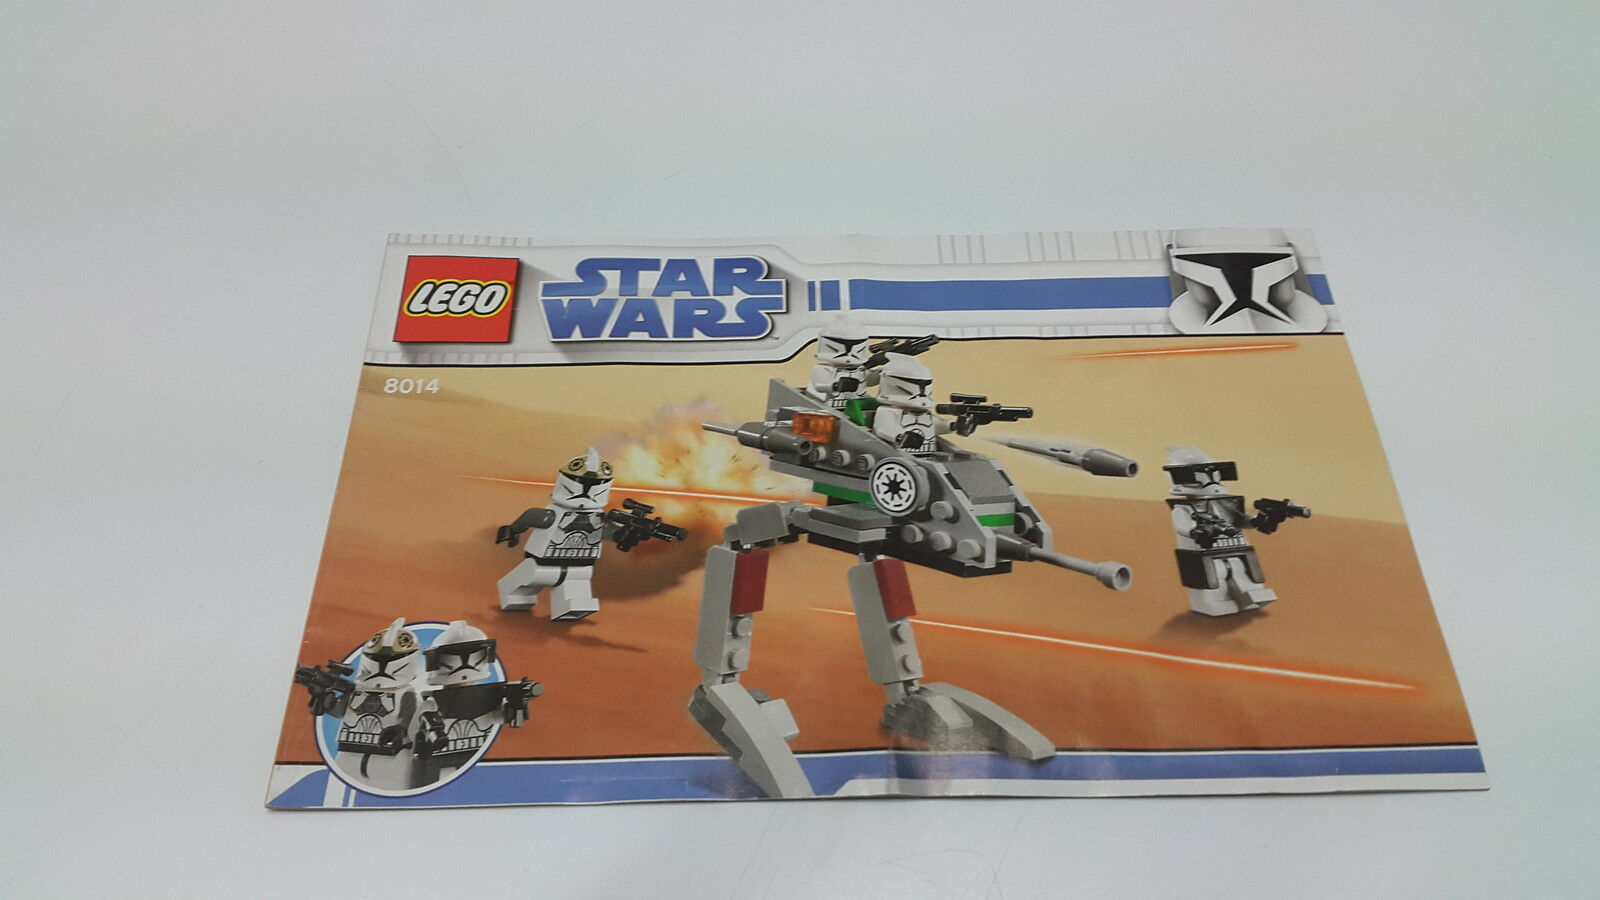 Lego Starwars Instructions Only For 8014 Clone Walker 199